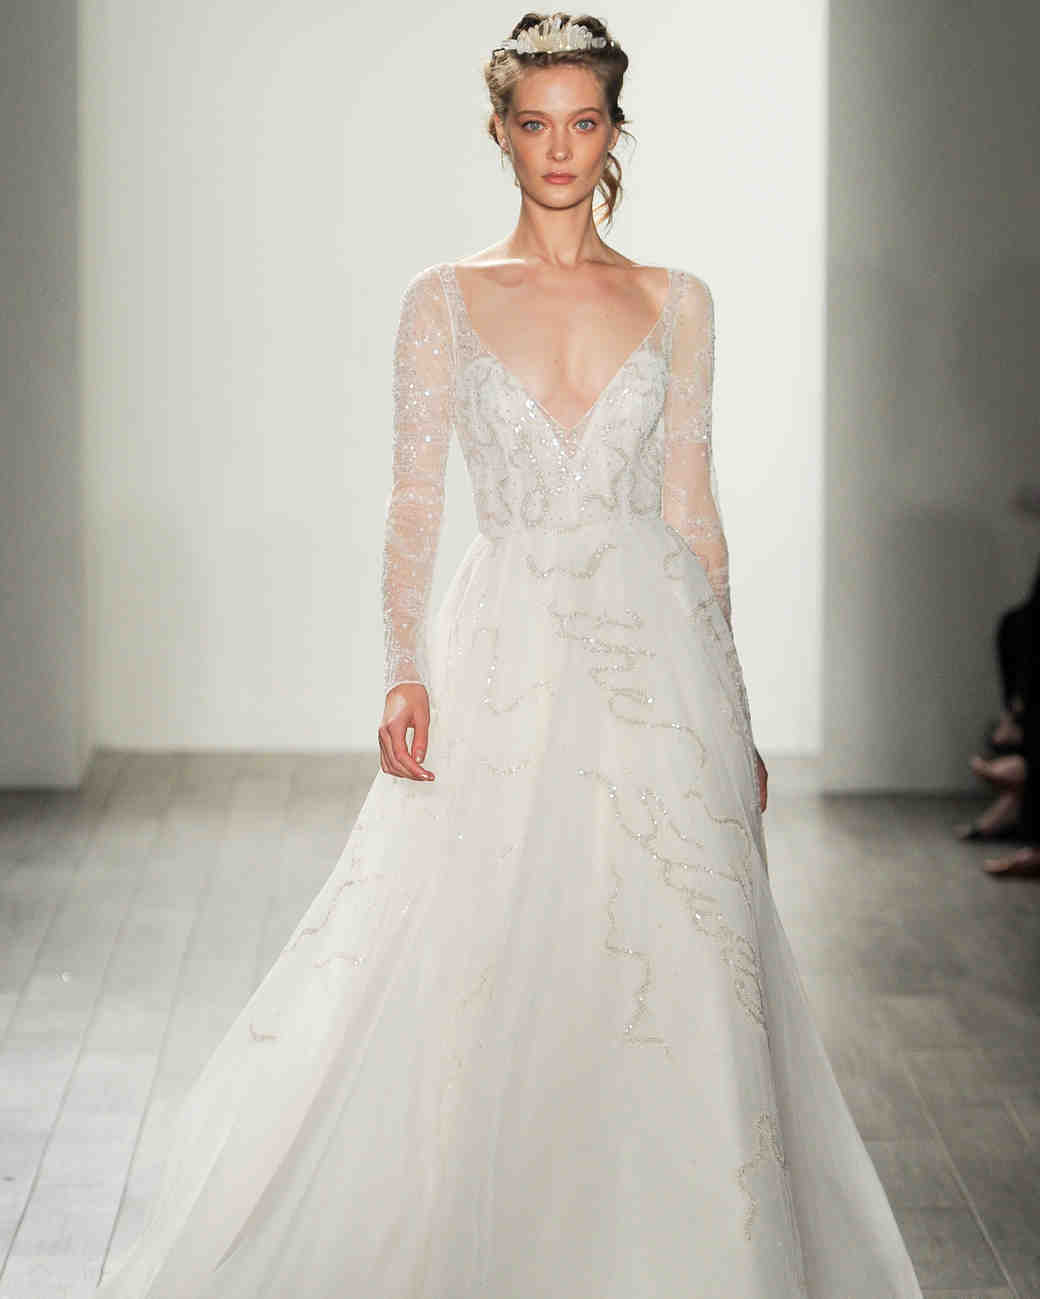 Wedding Hayley Paige Wedding Dresses hayley paige fall 2017 wedding dress collection martha stewart collection